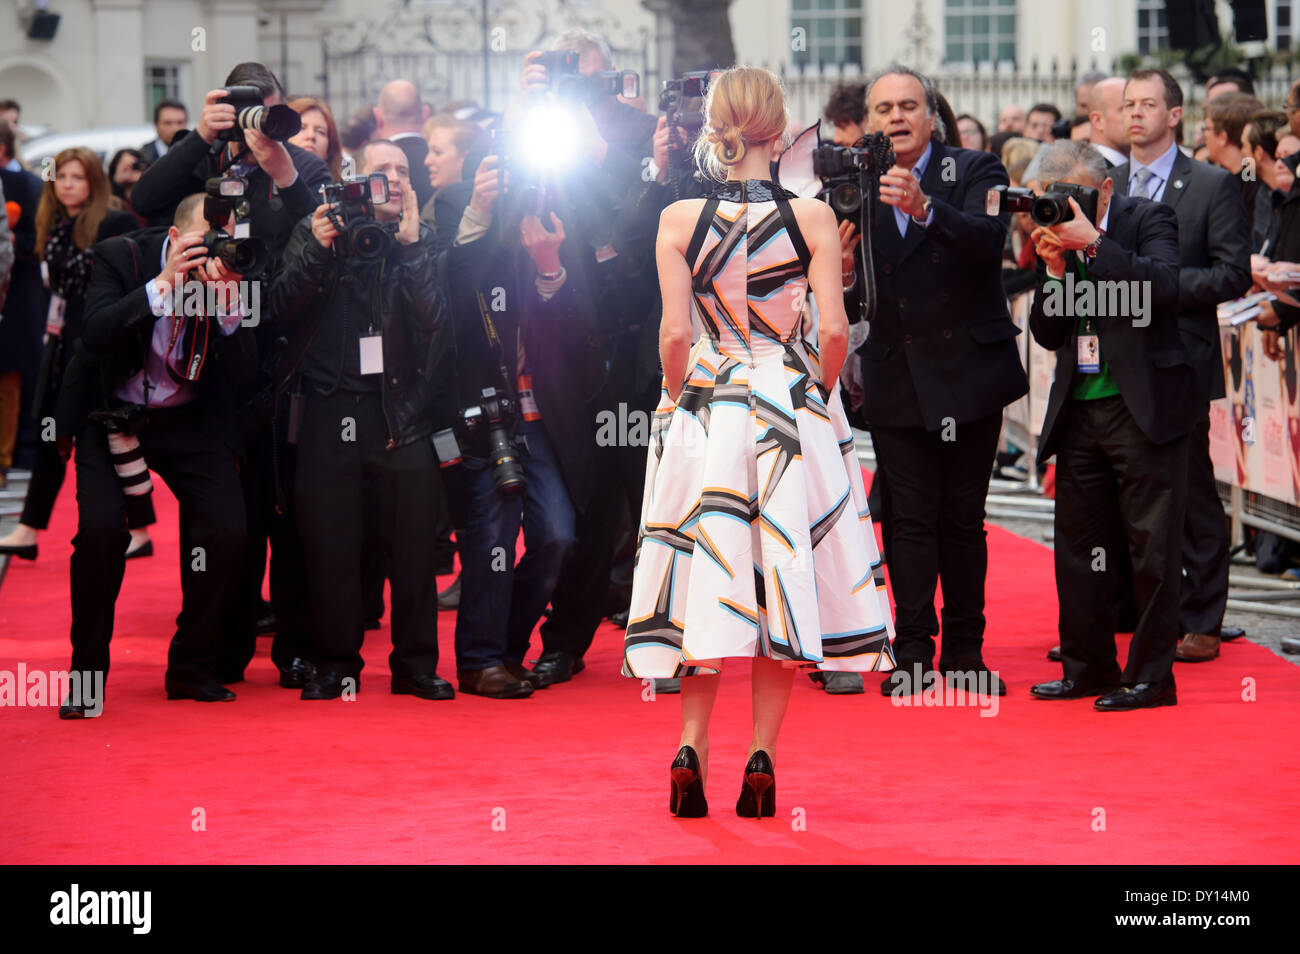 Leslie Mann arrives for the UK premiere of The Other Woman. - Stock Image